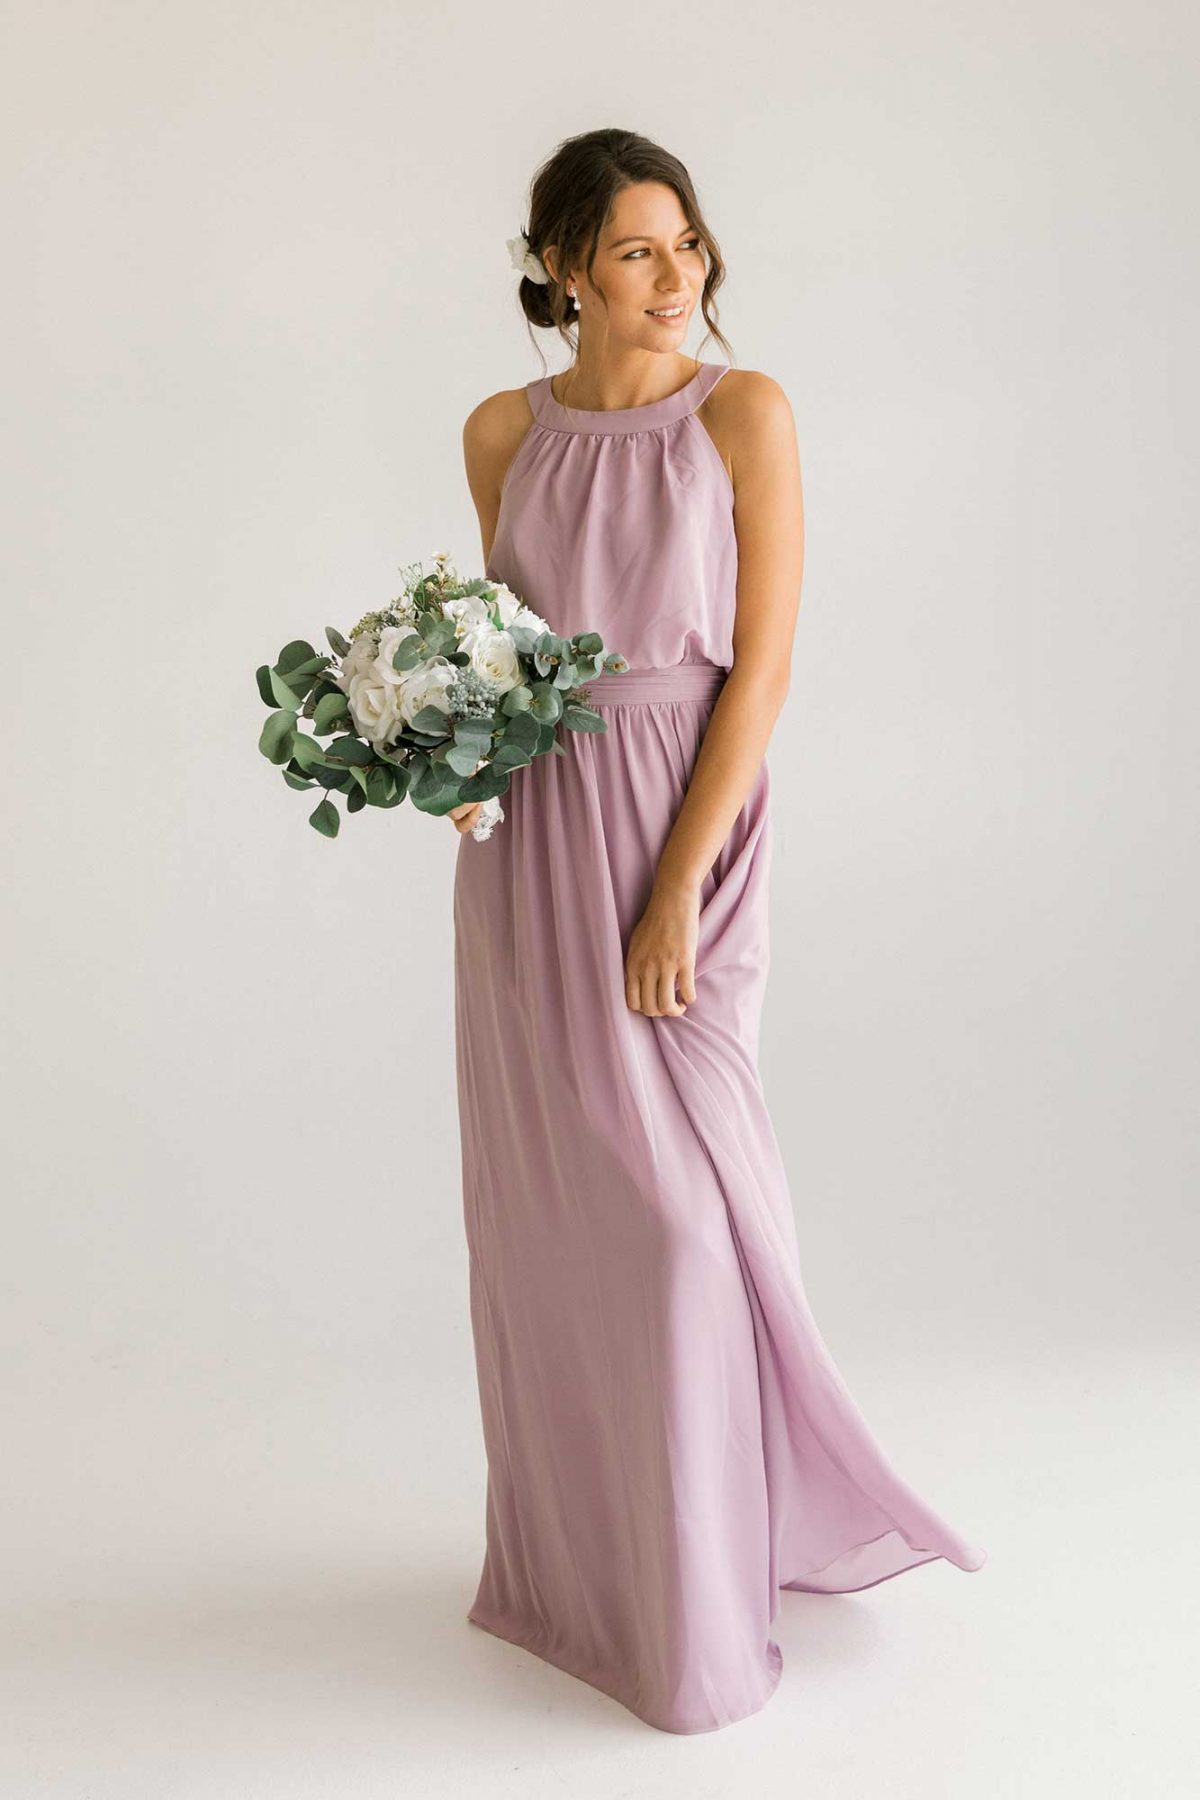 Cora dress in lilac colour side view